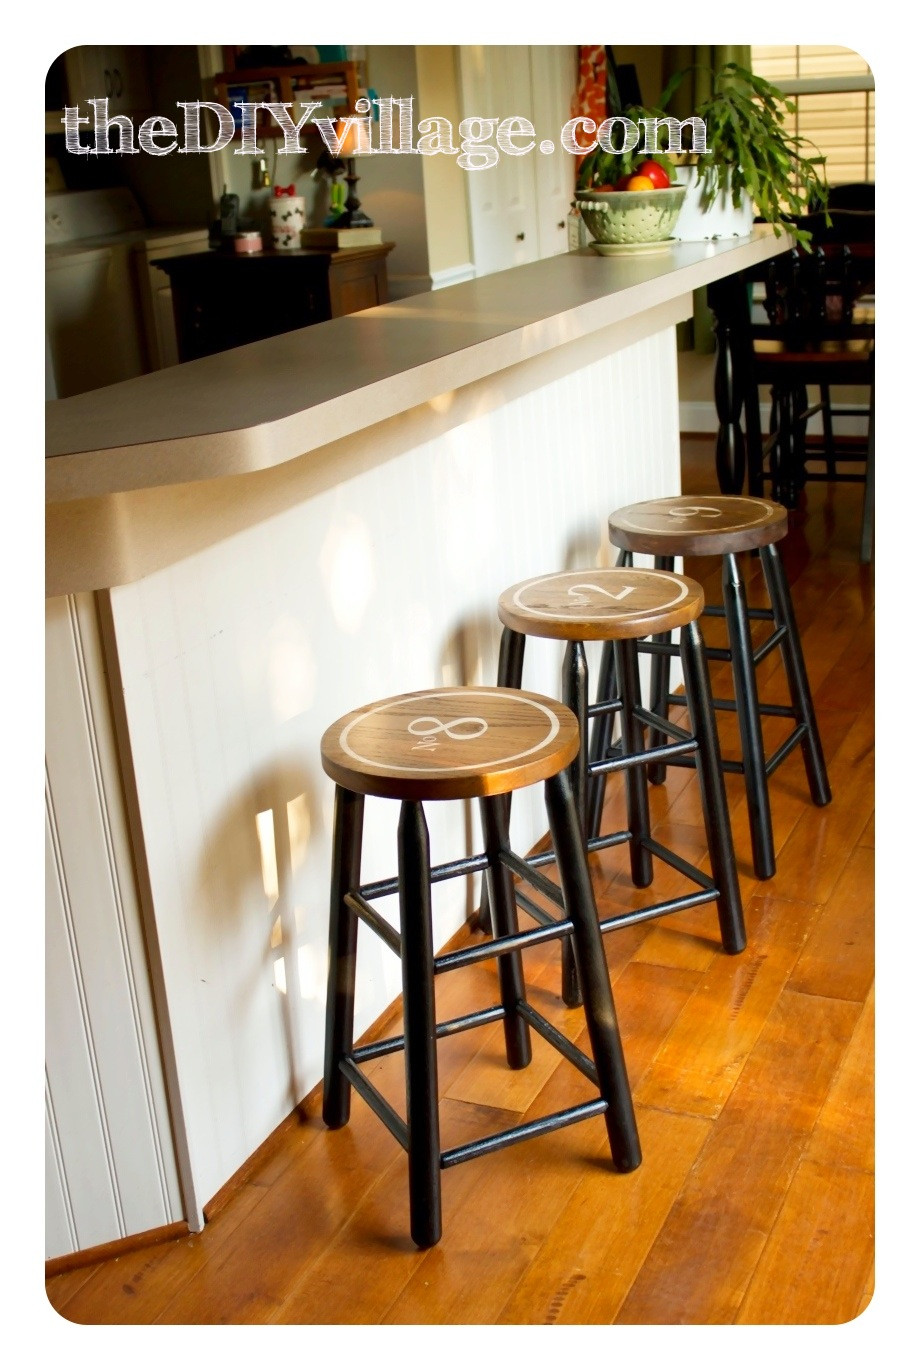 Best ideas about DIY Bar Stools . Save or Pin Vintage Industrial DIY Bar Stools the DIY village Now.